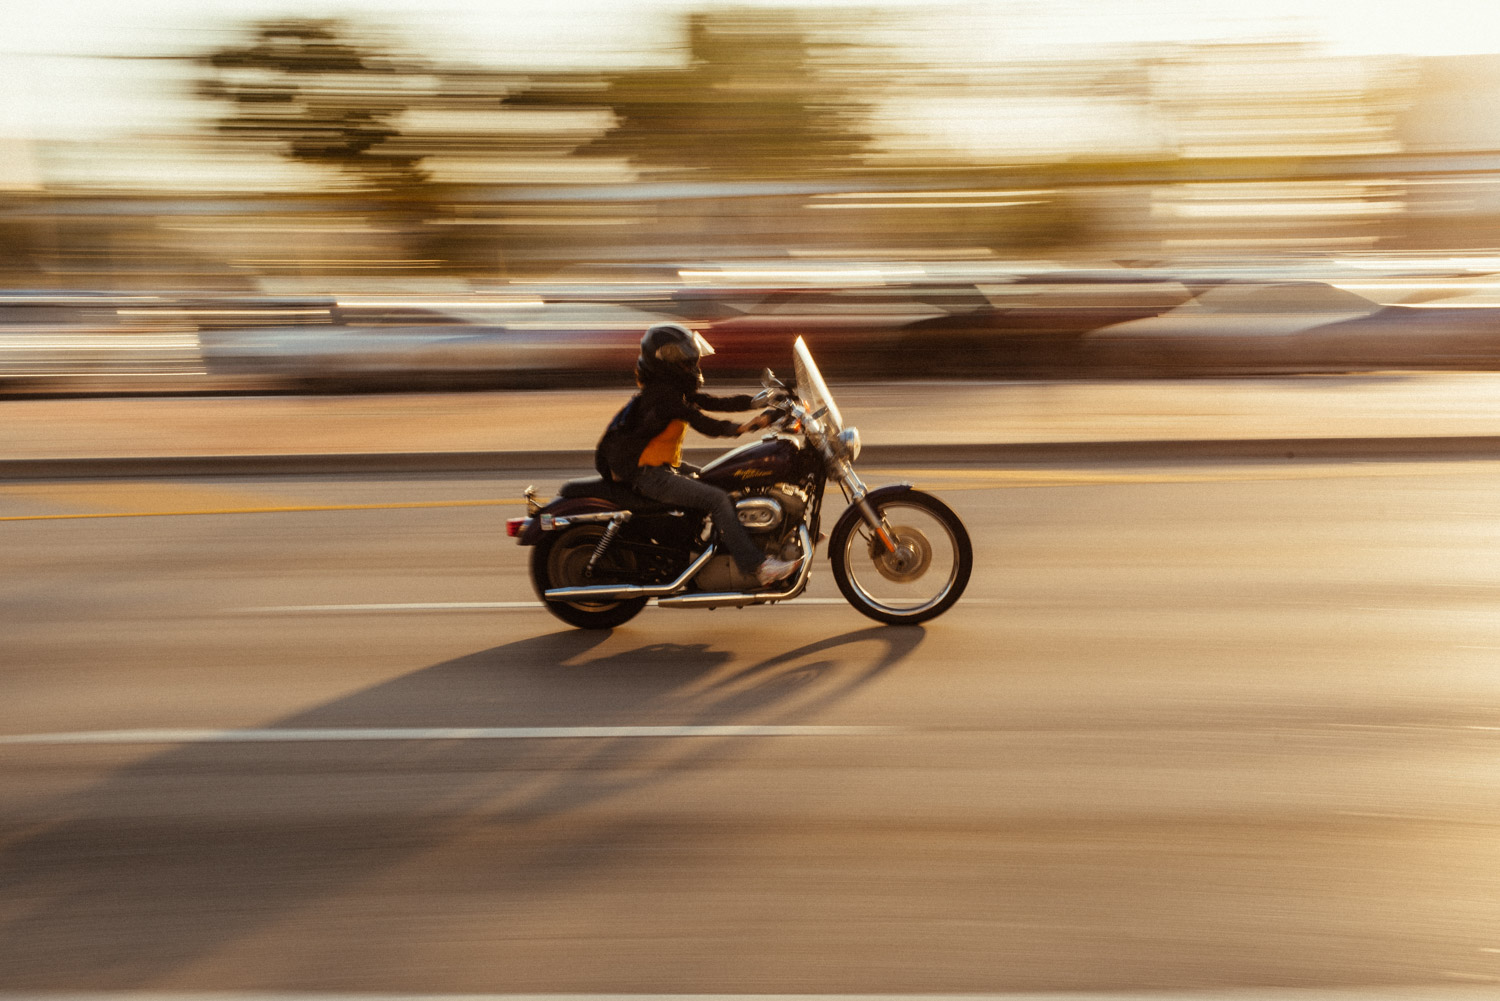 panning with motorcycle